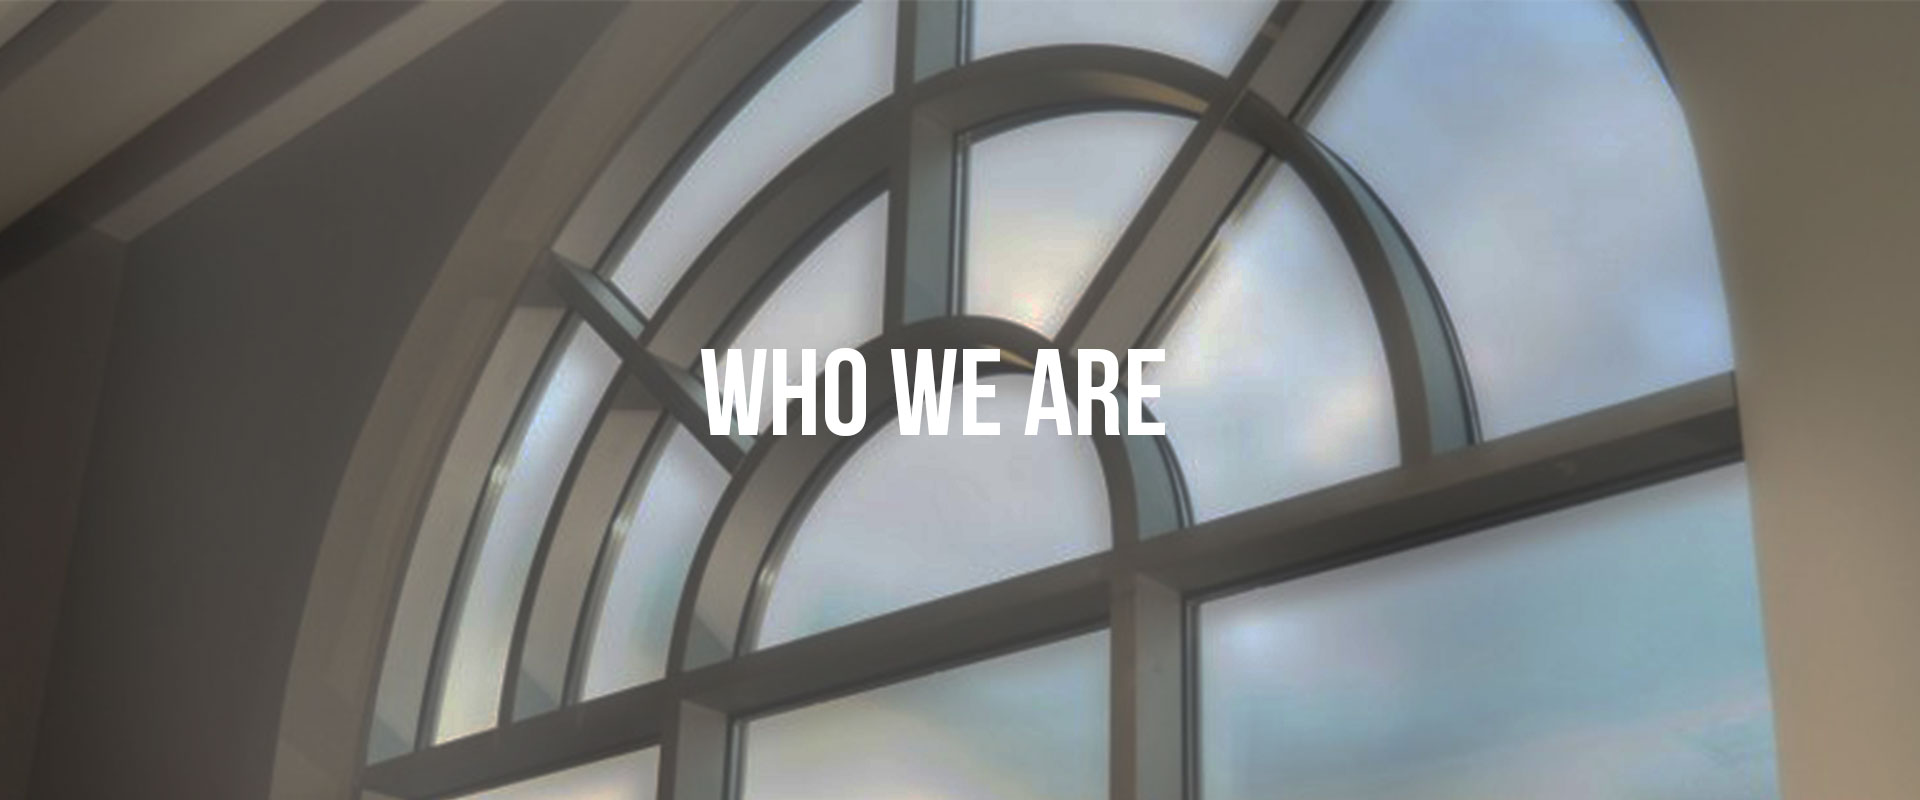 who-we-are-header